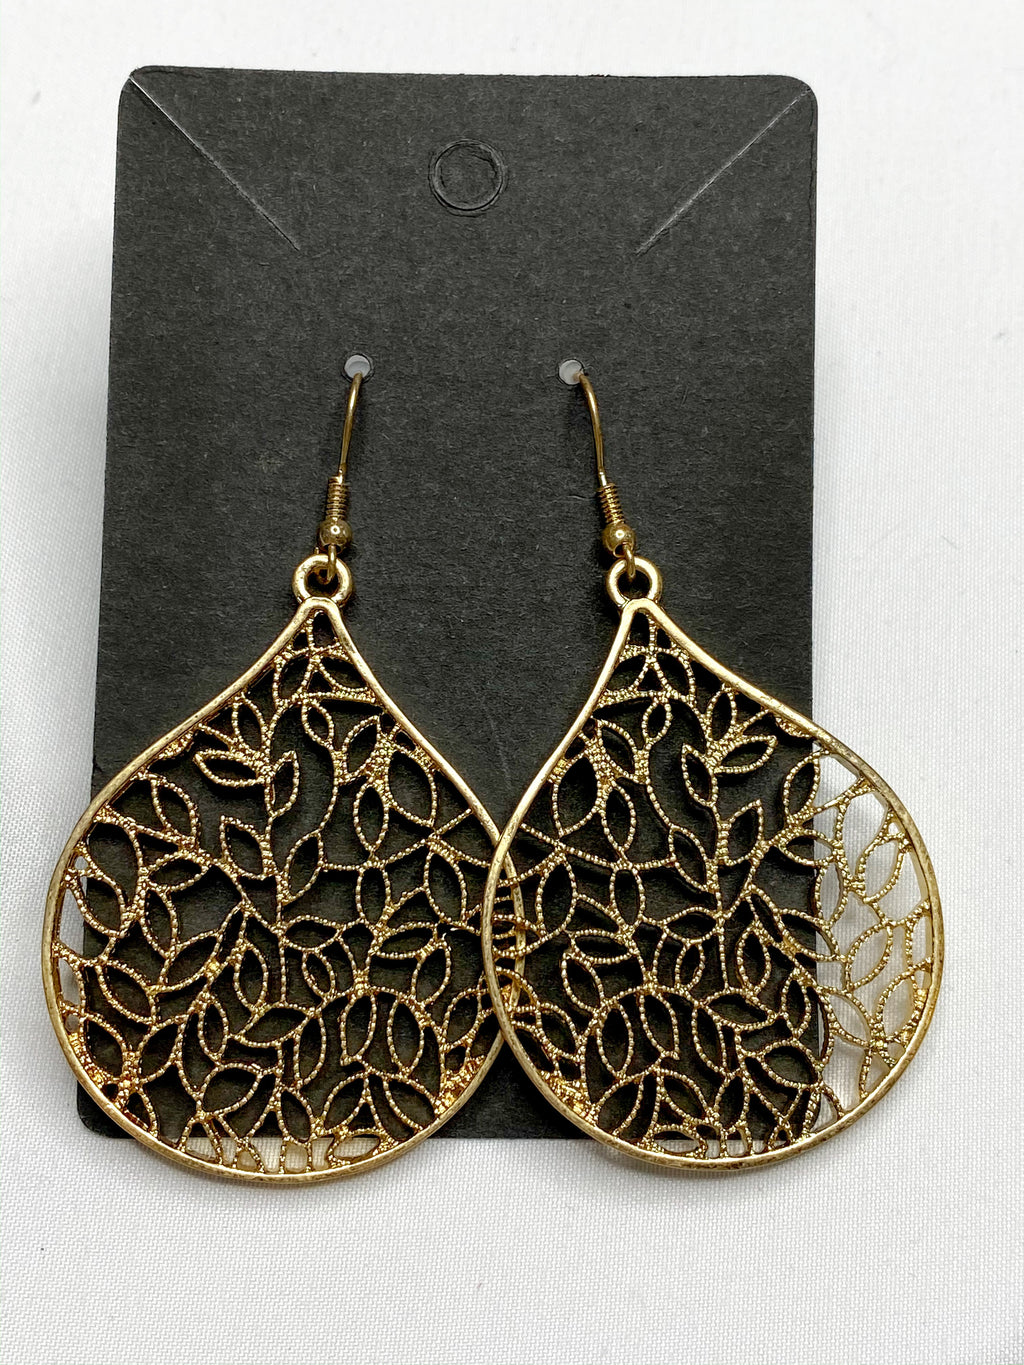 Worn Gold Leaf Earrings